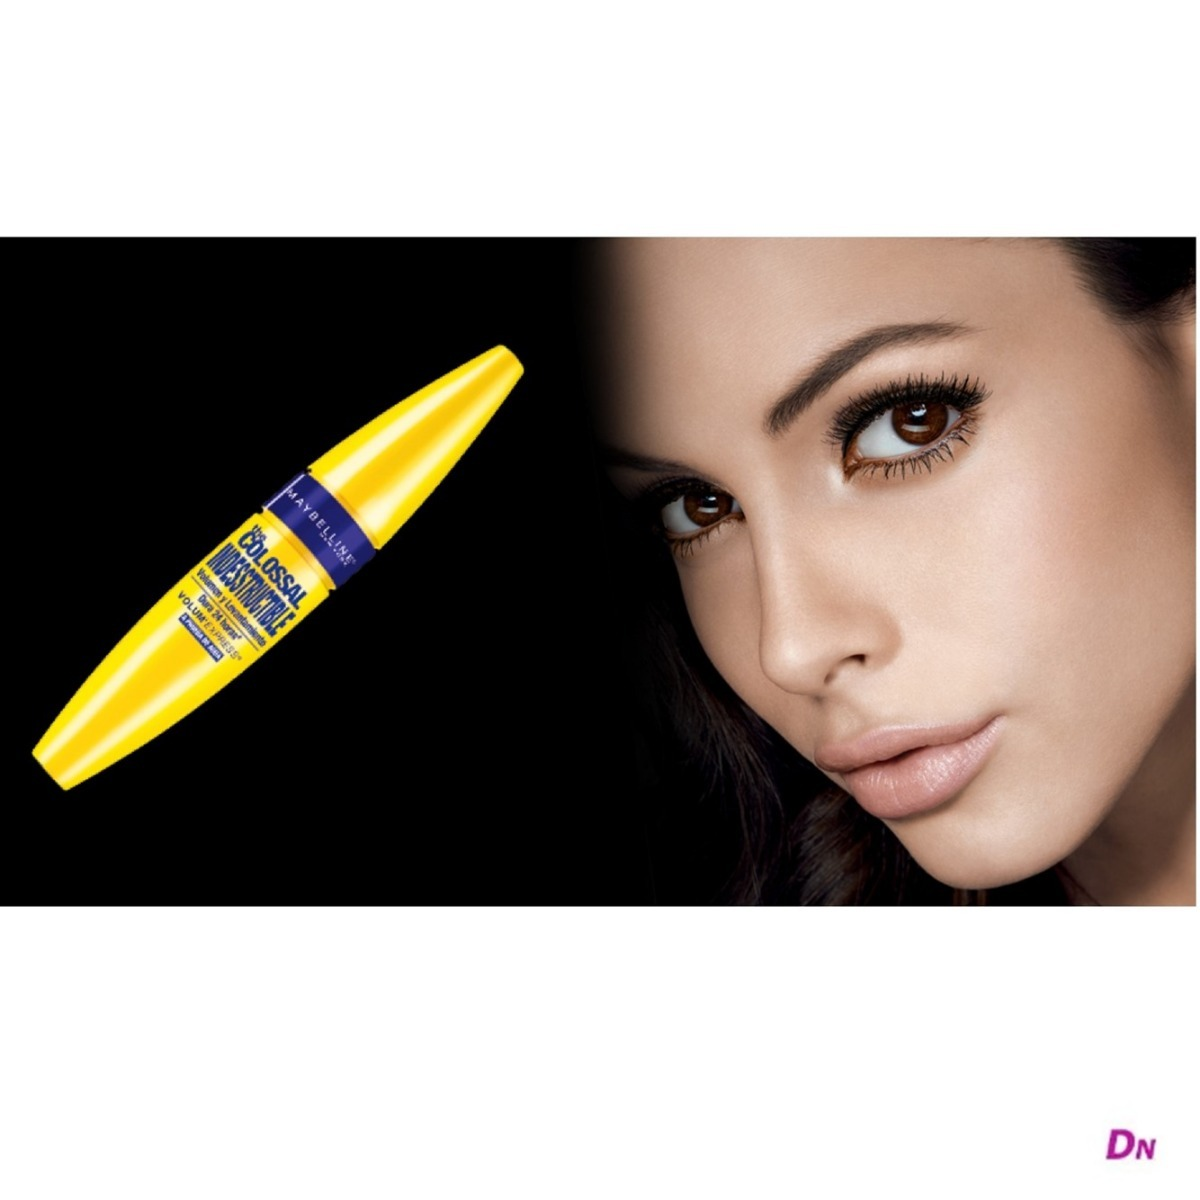 Maybelline colossal indestructible